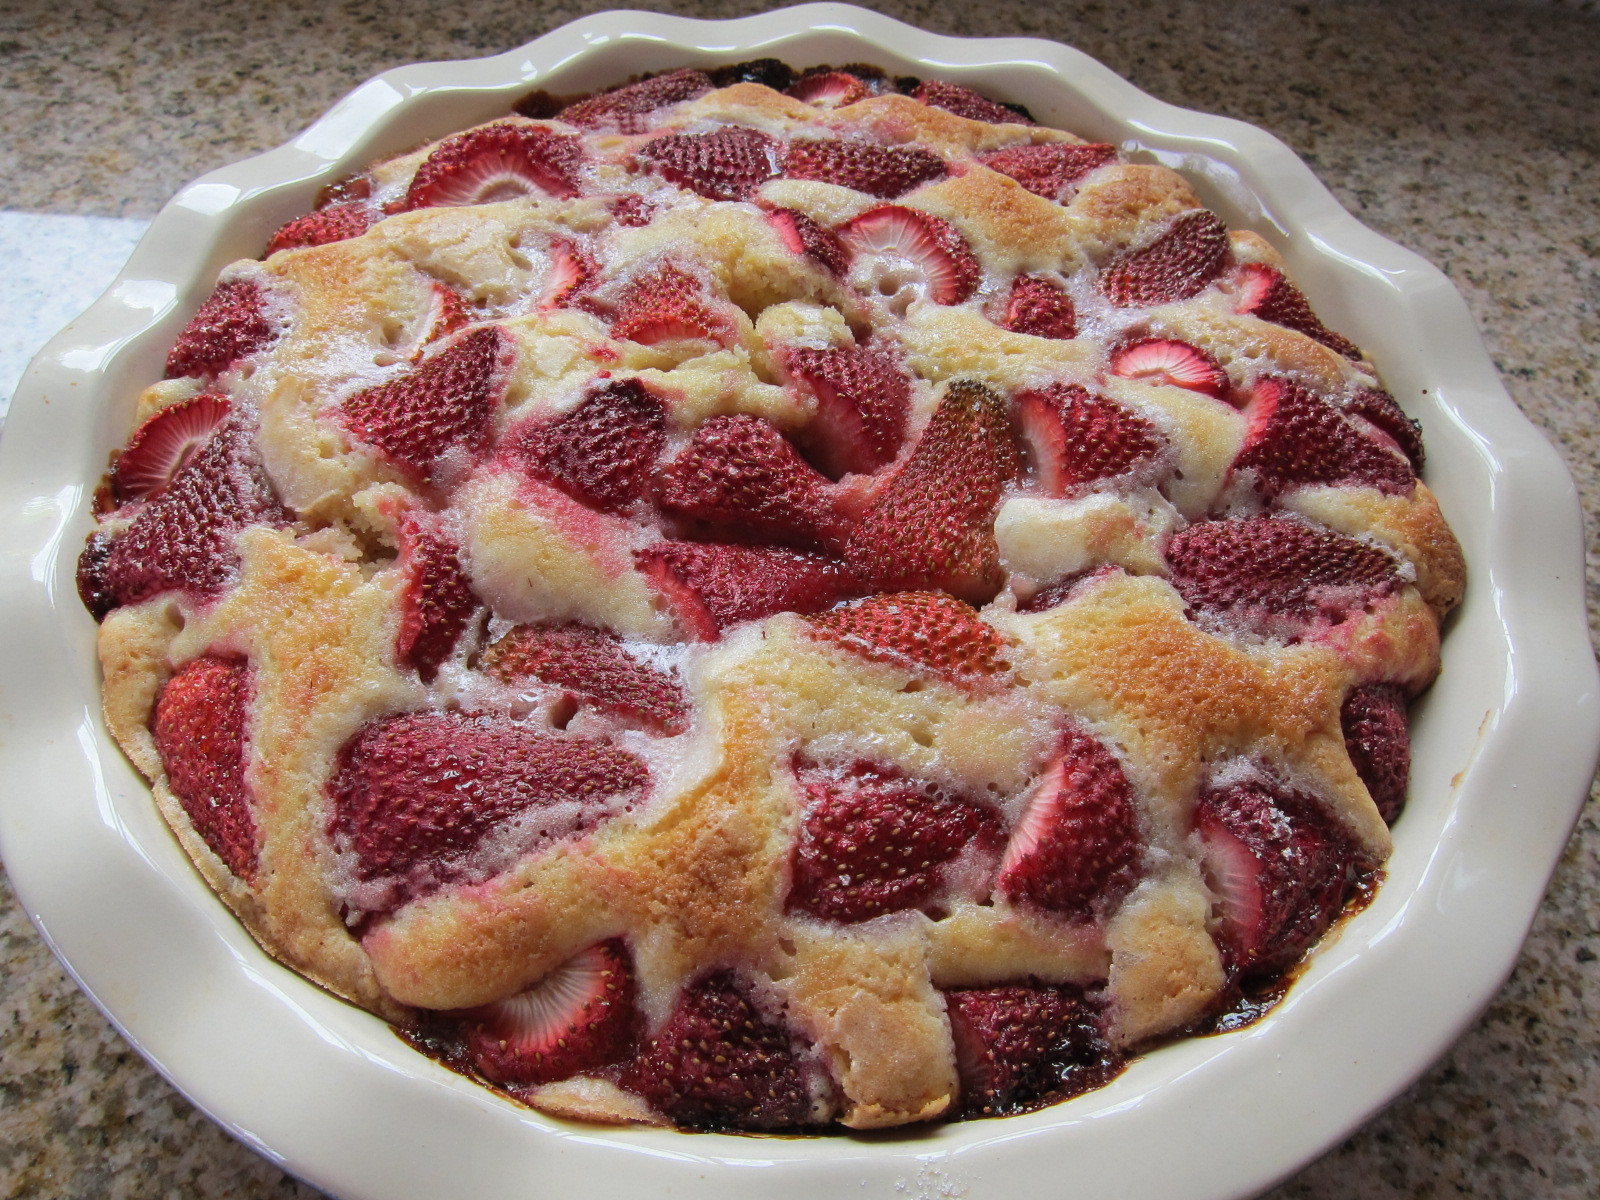 Strawberry Dessert Recipes Easy  Easy Strawberry Cake